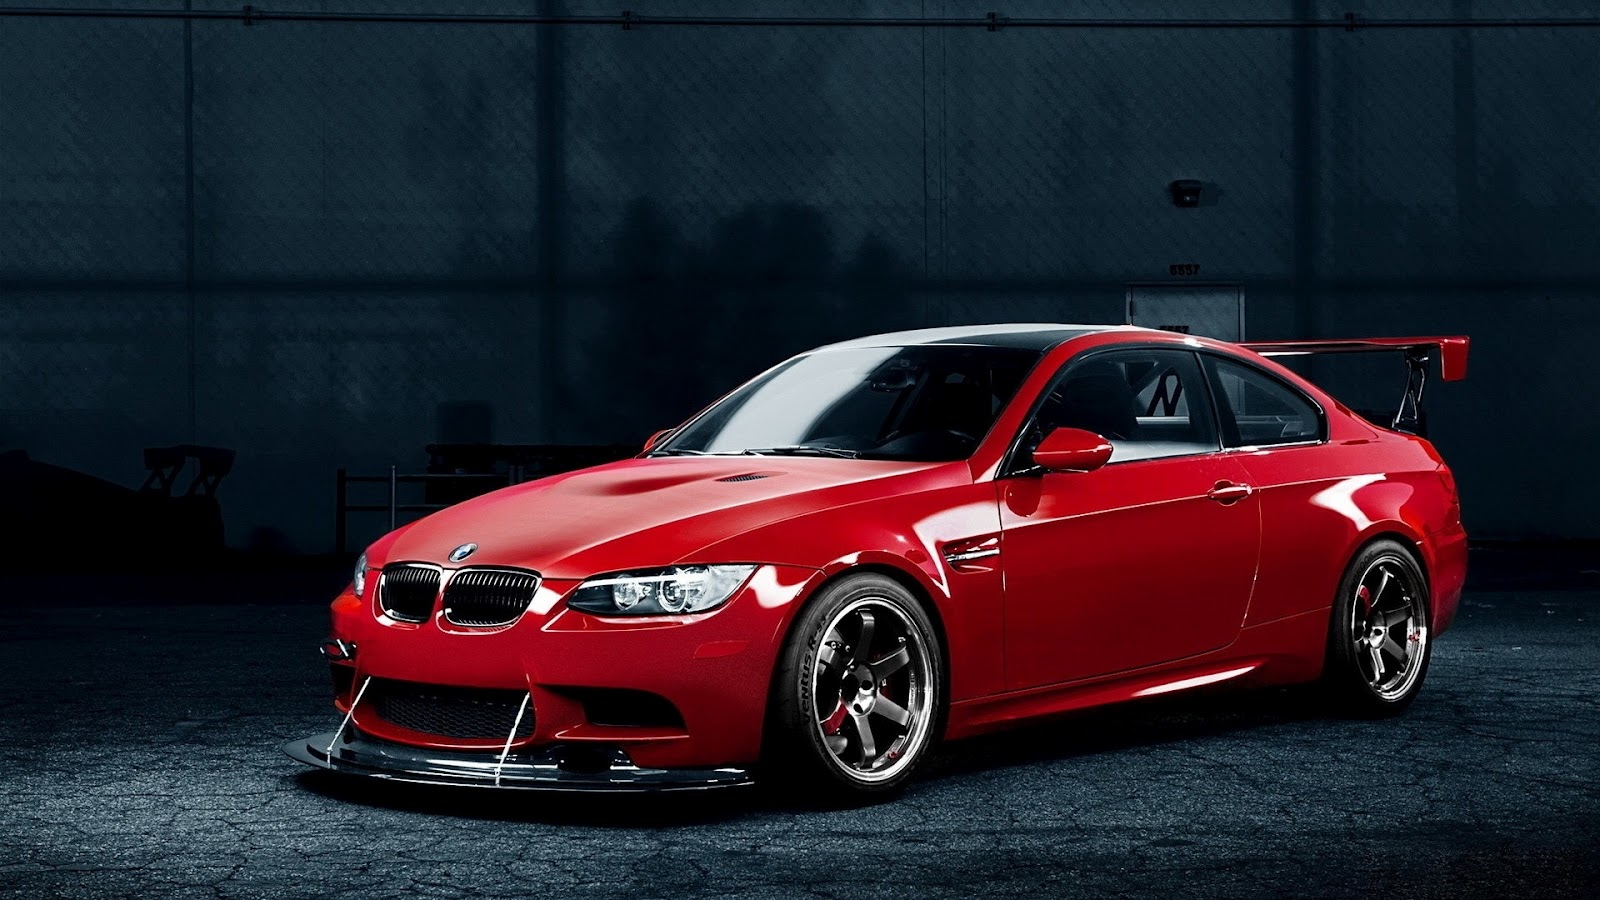 free hd wallpapers bmw m3 wallpapers hd. Black Bedroom Furniture Sets. Home Design Ideas